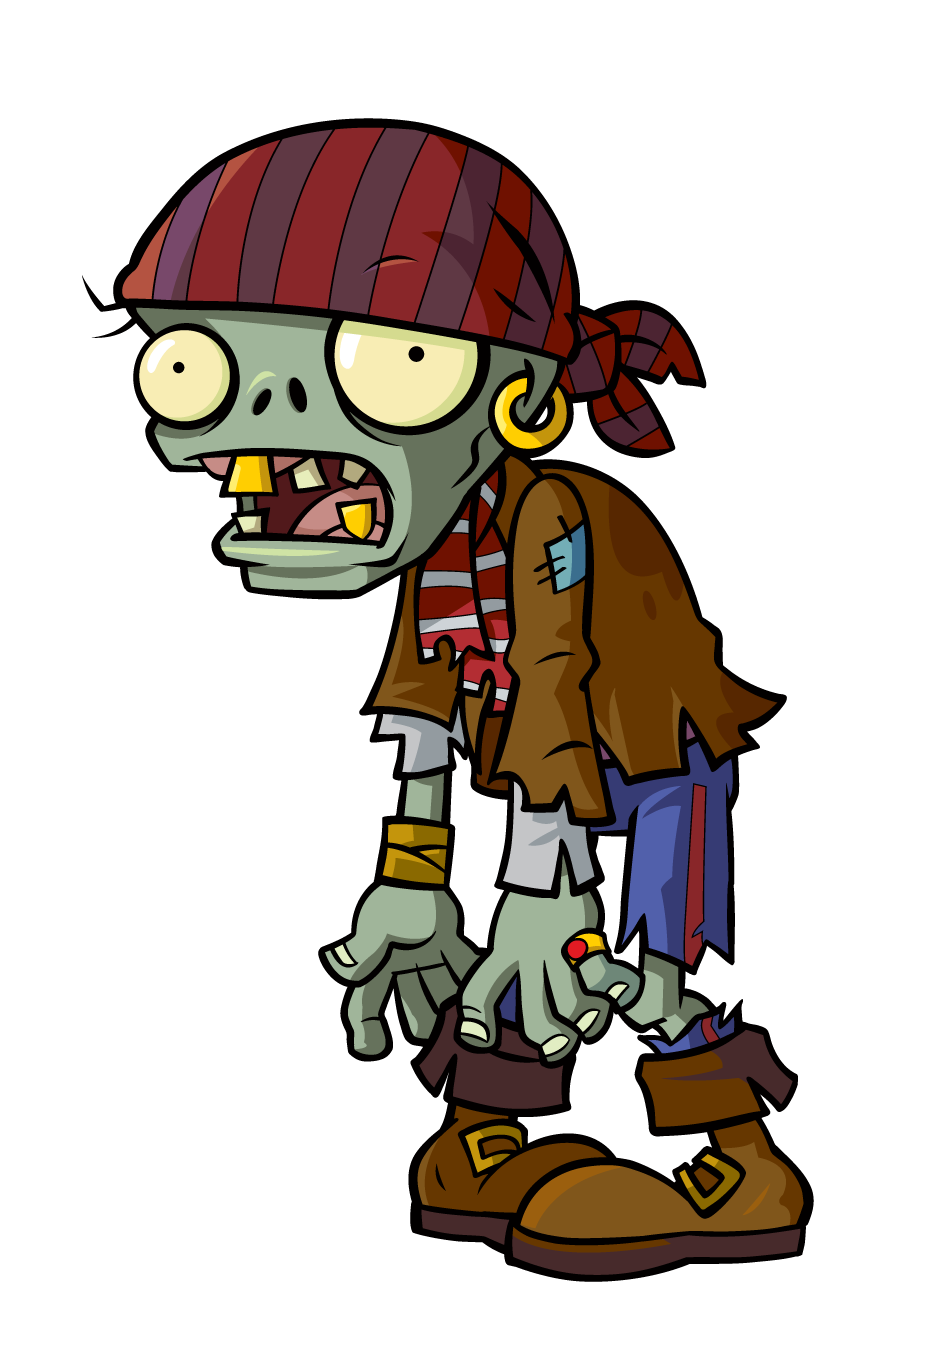 Halloween zombies clipart picture black and white pirate zombie plants v zombies - Google Search | Halloween Fun ... picture black and white